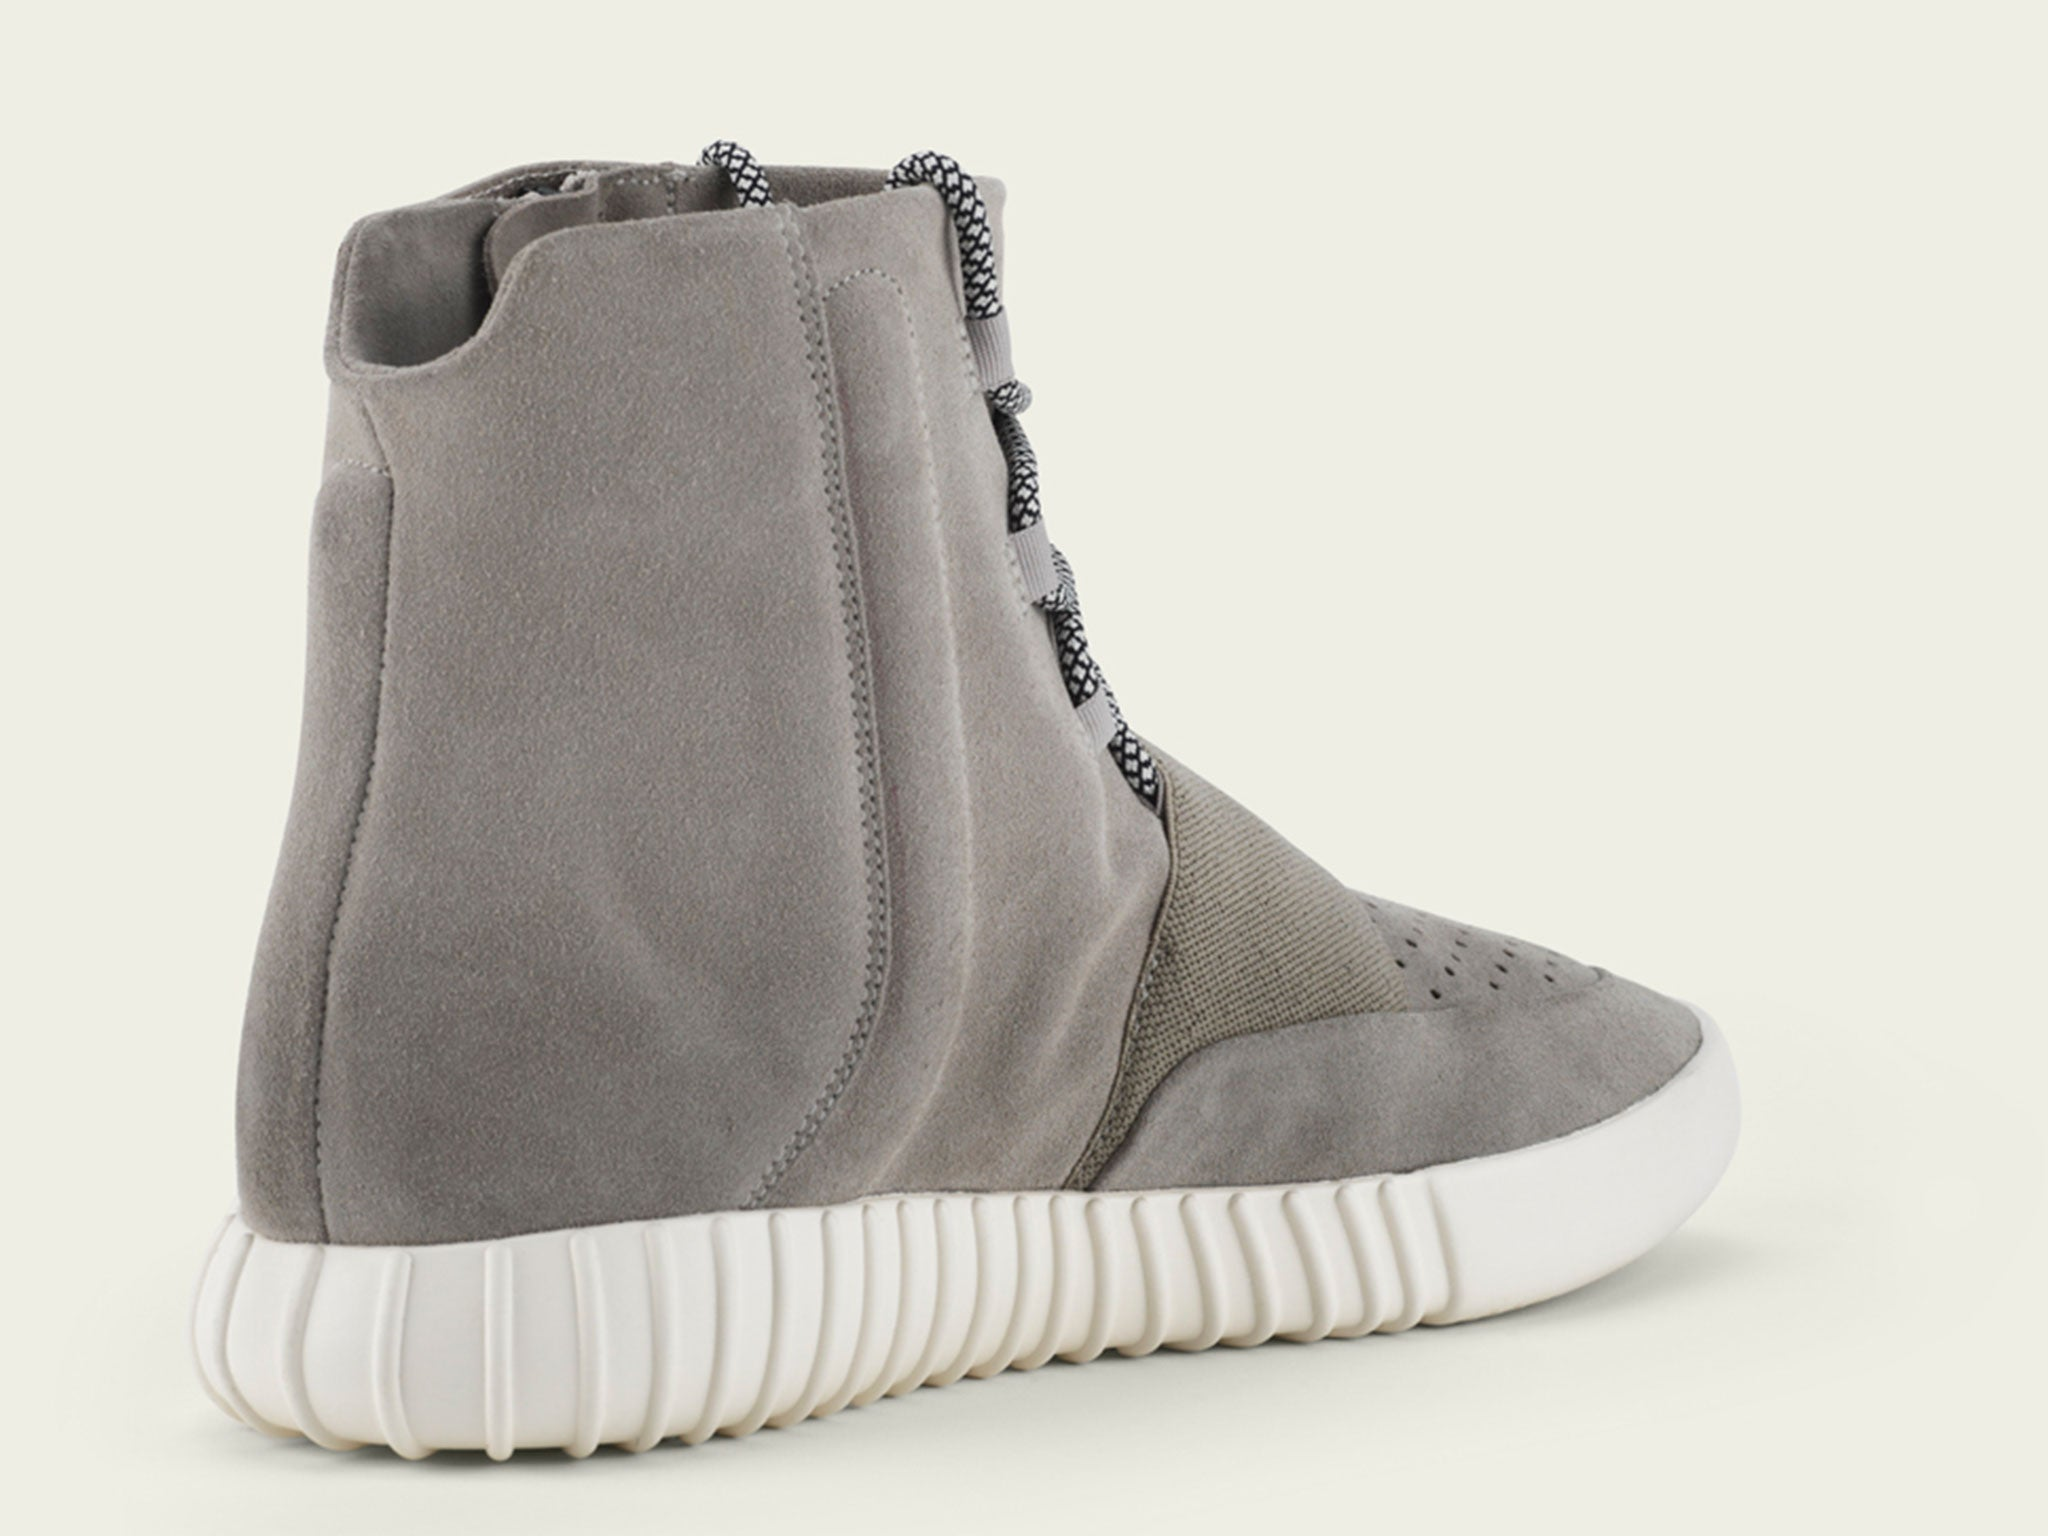 Yeezy Boost 350: Release date and price on the new Kanye